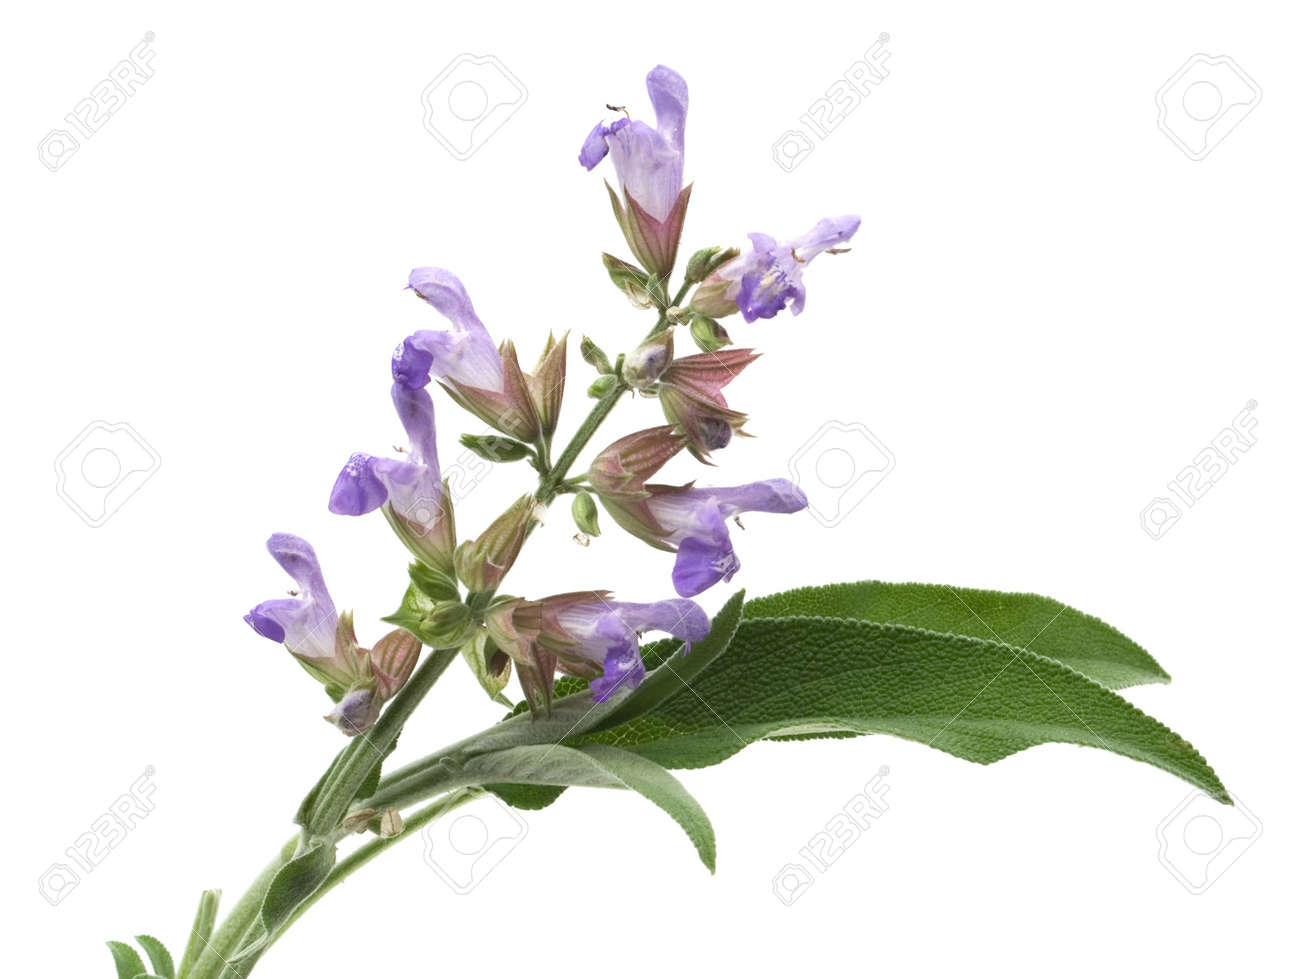 Sage Lat Salvia Officinalis Flower And Leafs Isolated On White